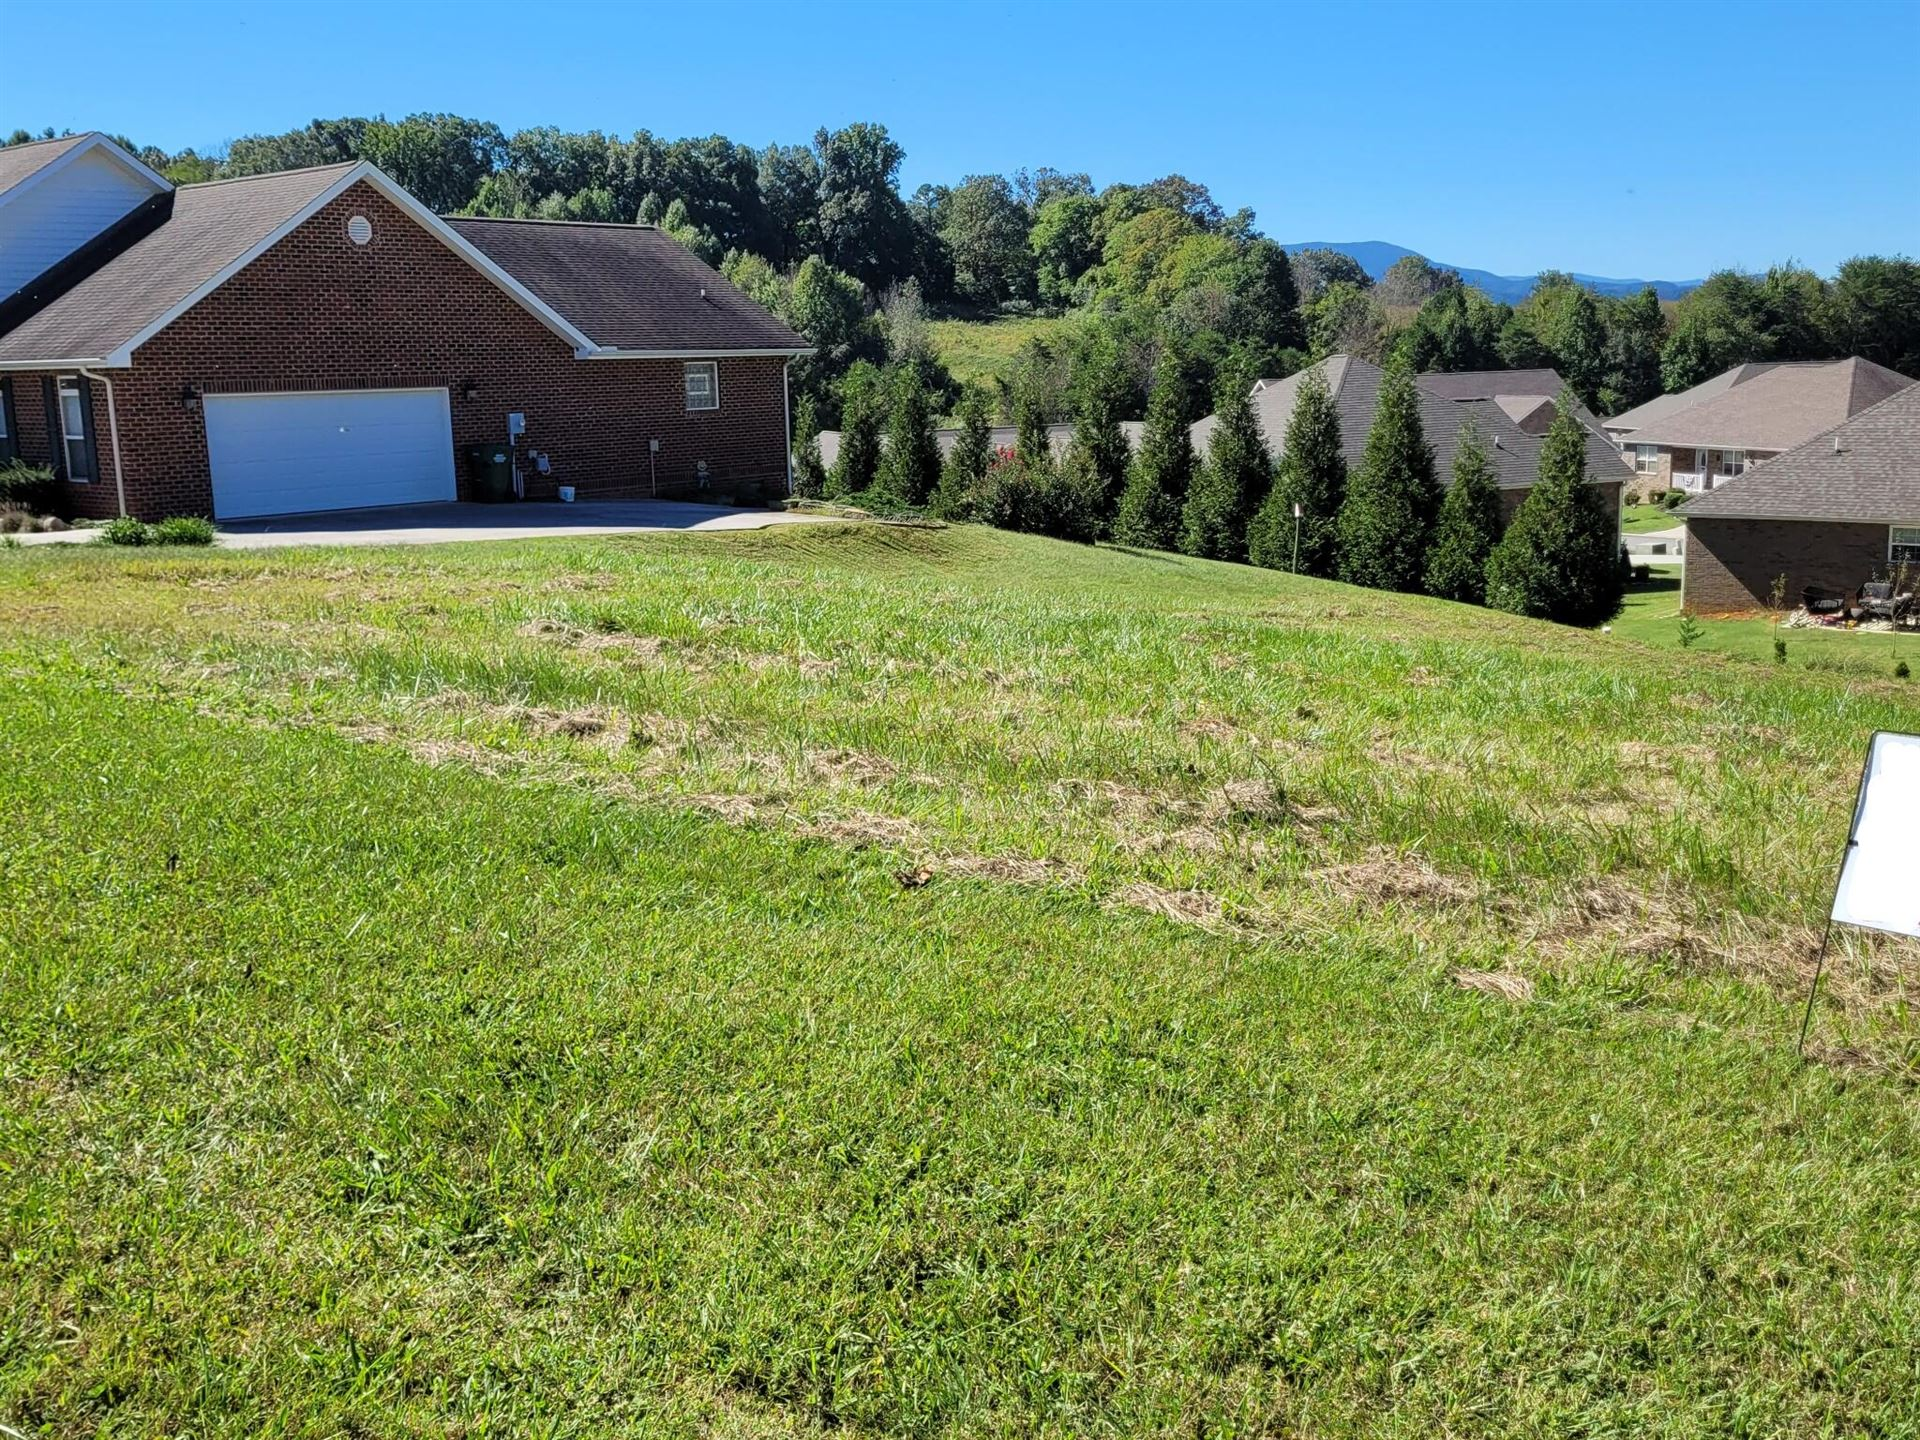 Photo of 1815 Placid Drive, Sevierville, TN 37862 (MLS # 9929105)